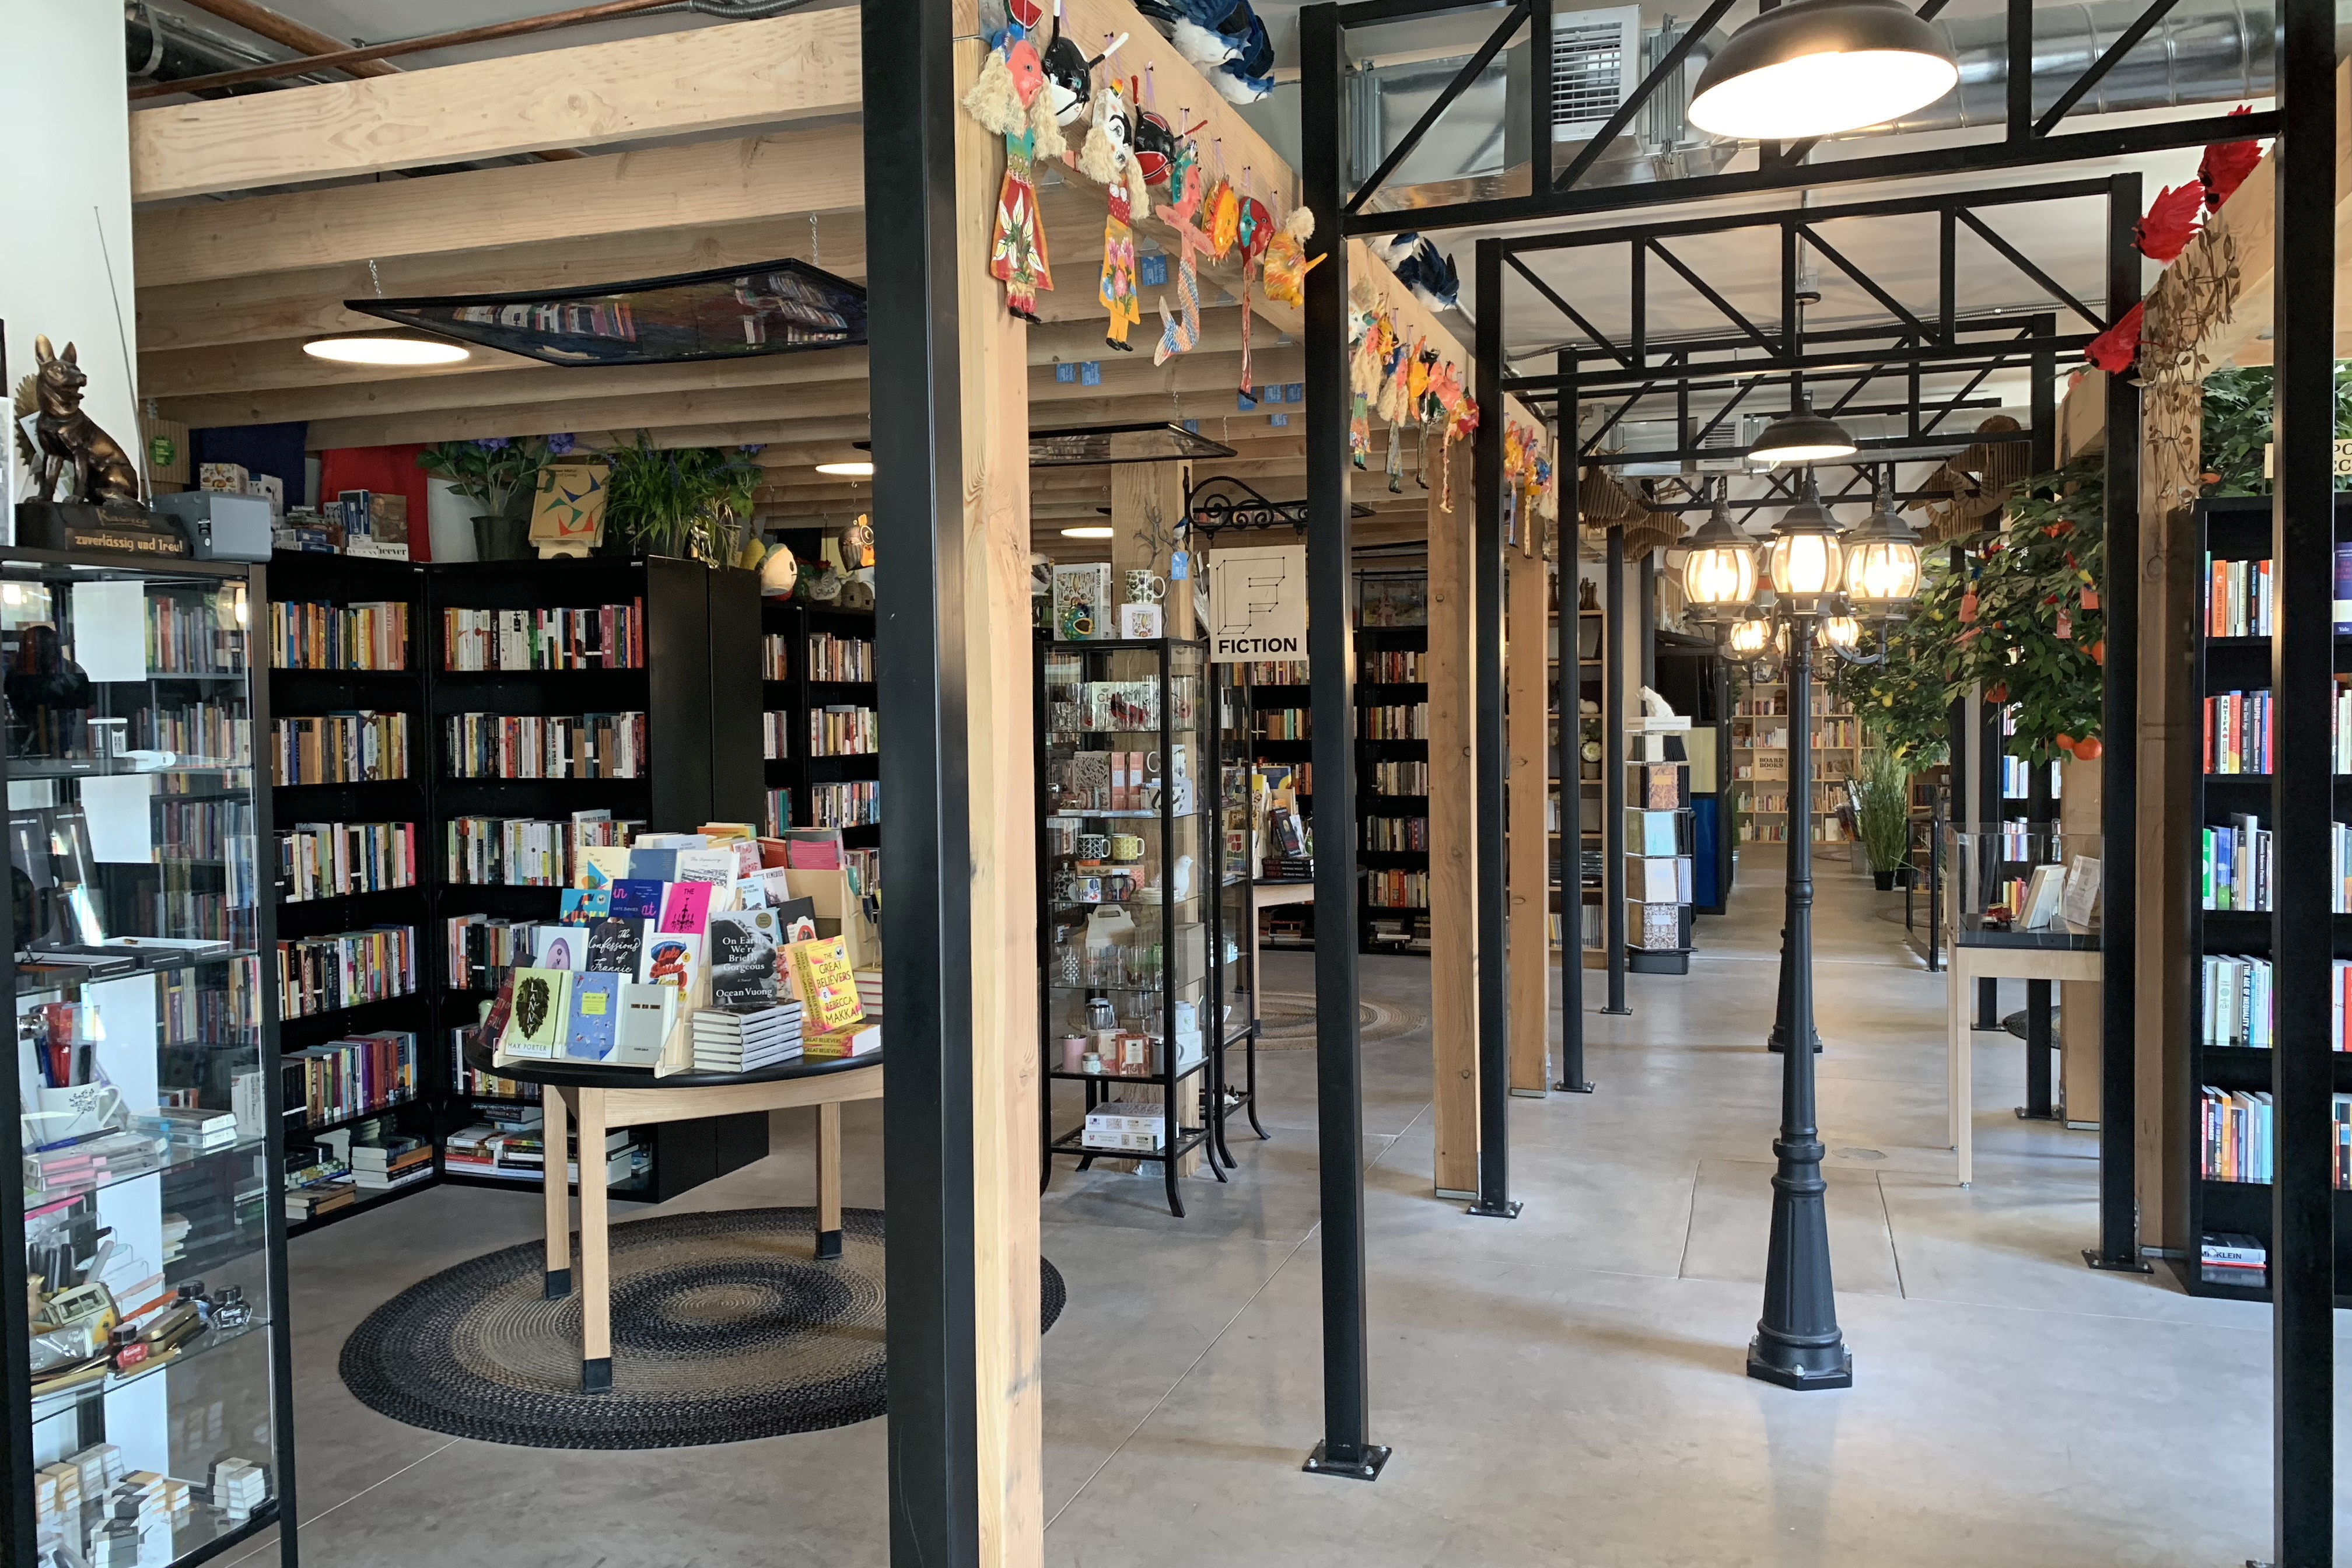 10 of the Best Independent Bookstores in Las Vegas